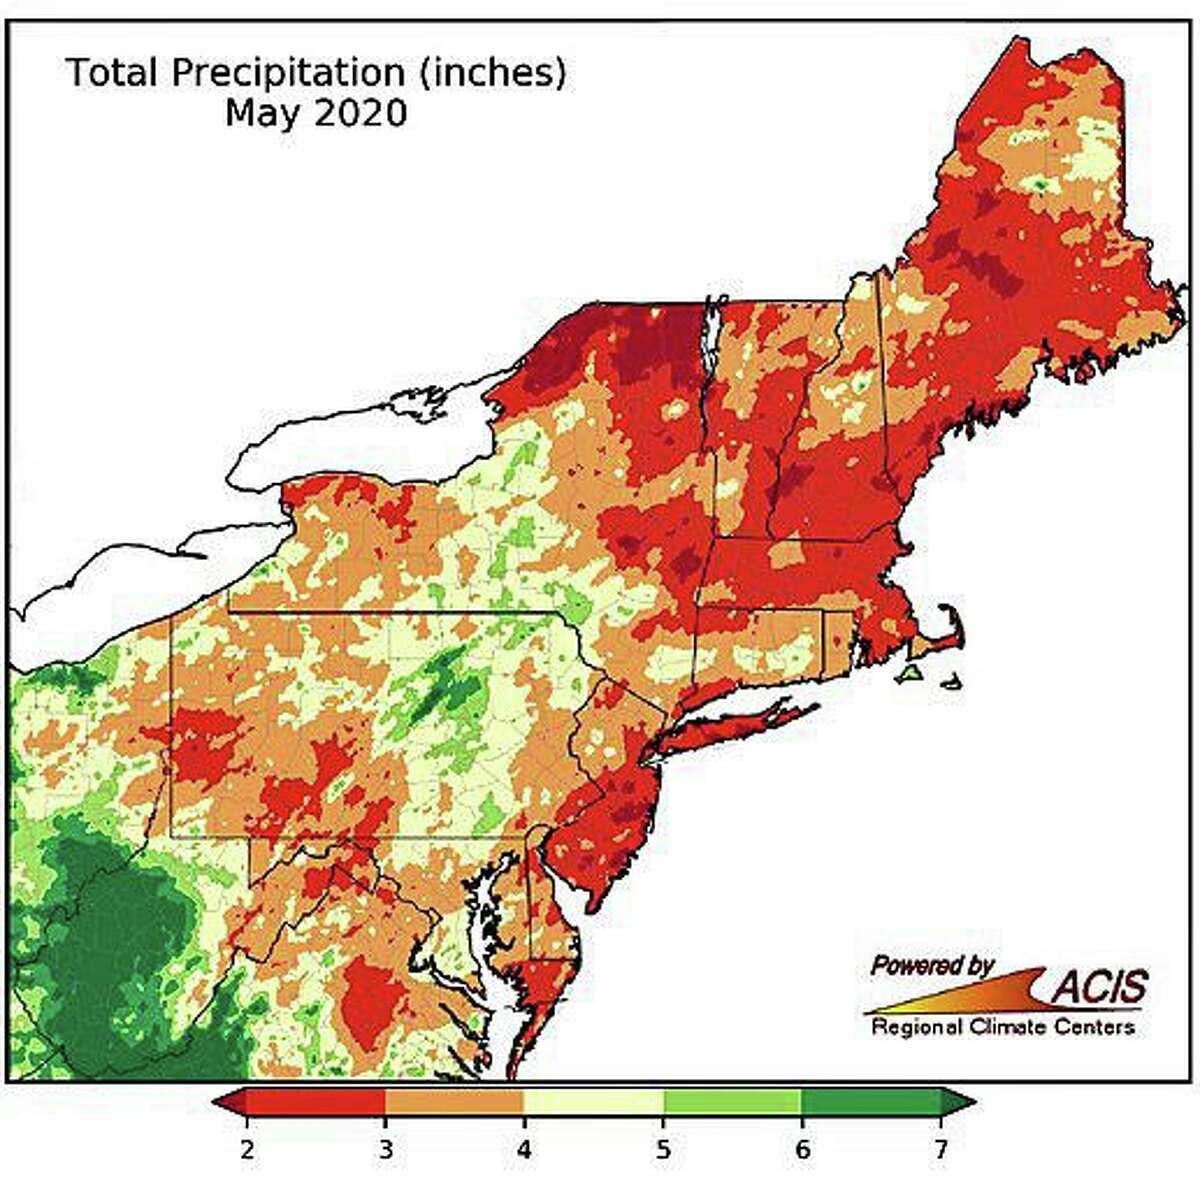 According to the Northeast Regional Climate Center, some parts of Connecticut have received less than a half-inch of rain this month. May's average rainfall in the state is 3.52 inches. Parts of the state are more than 7 inches below the normal year-to-date rainfall.